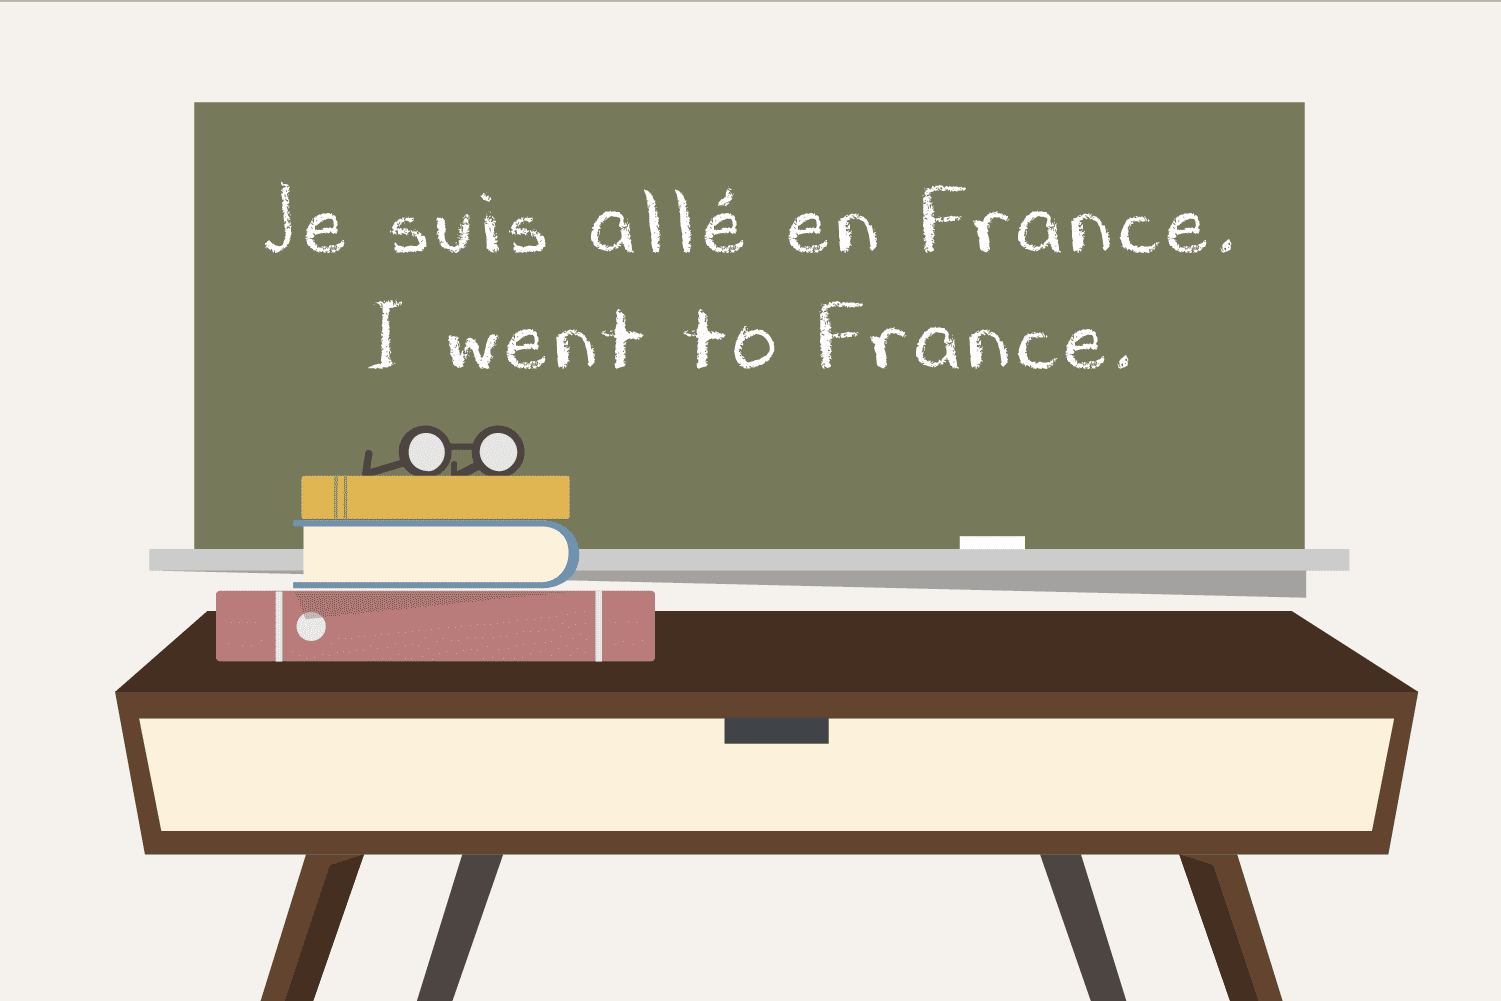 How Does The Simple Past Tense Work In French